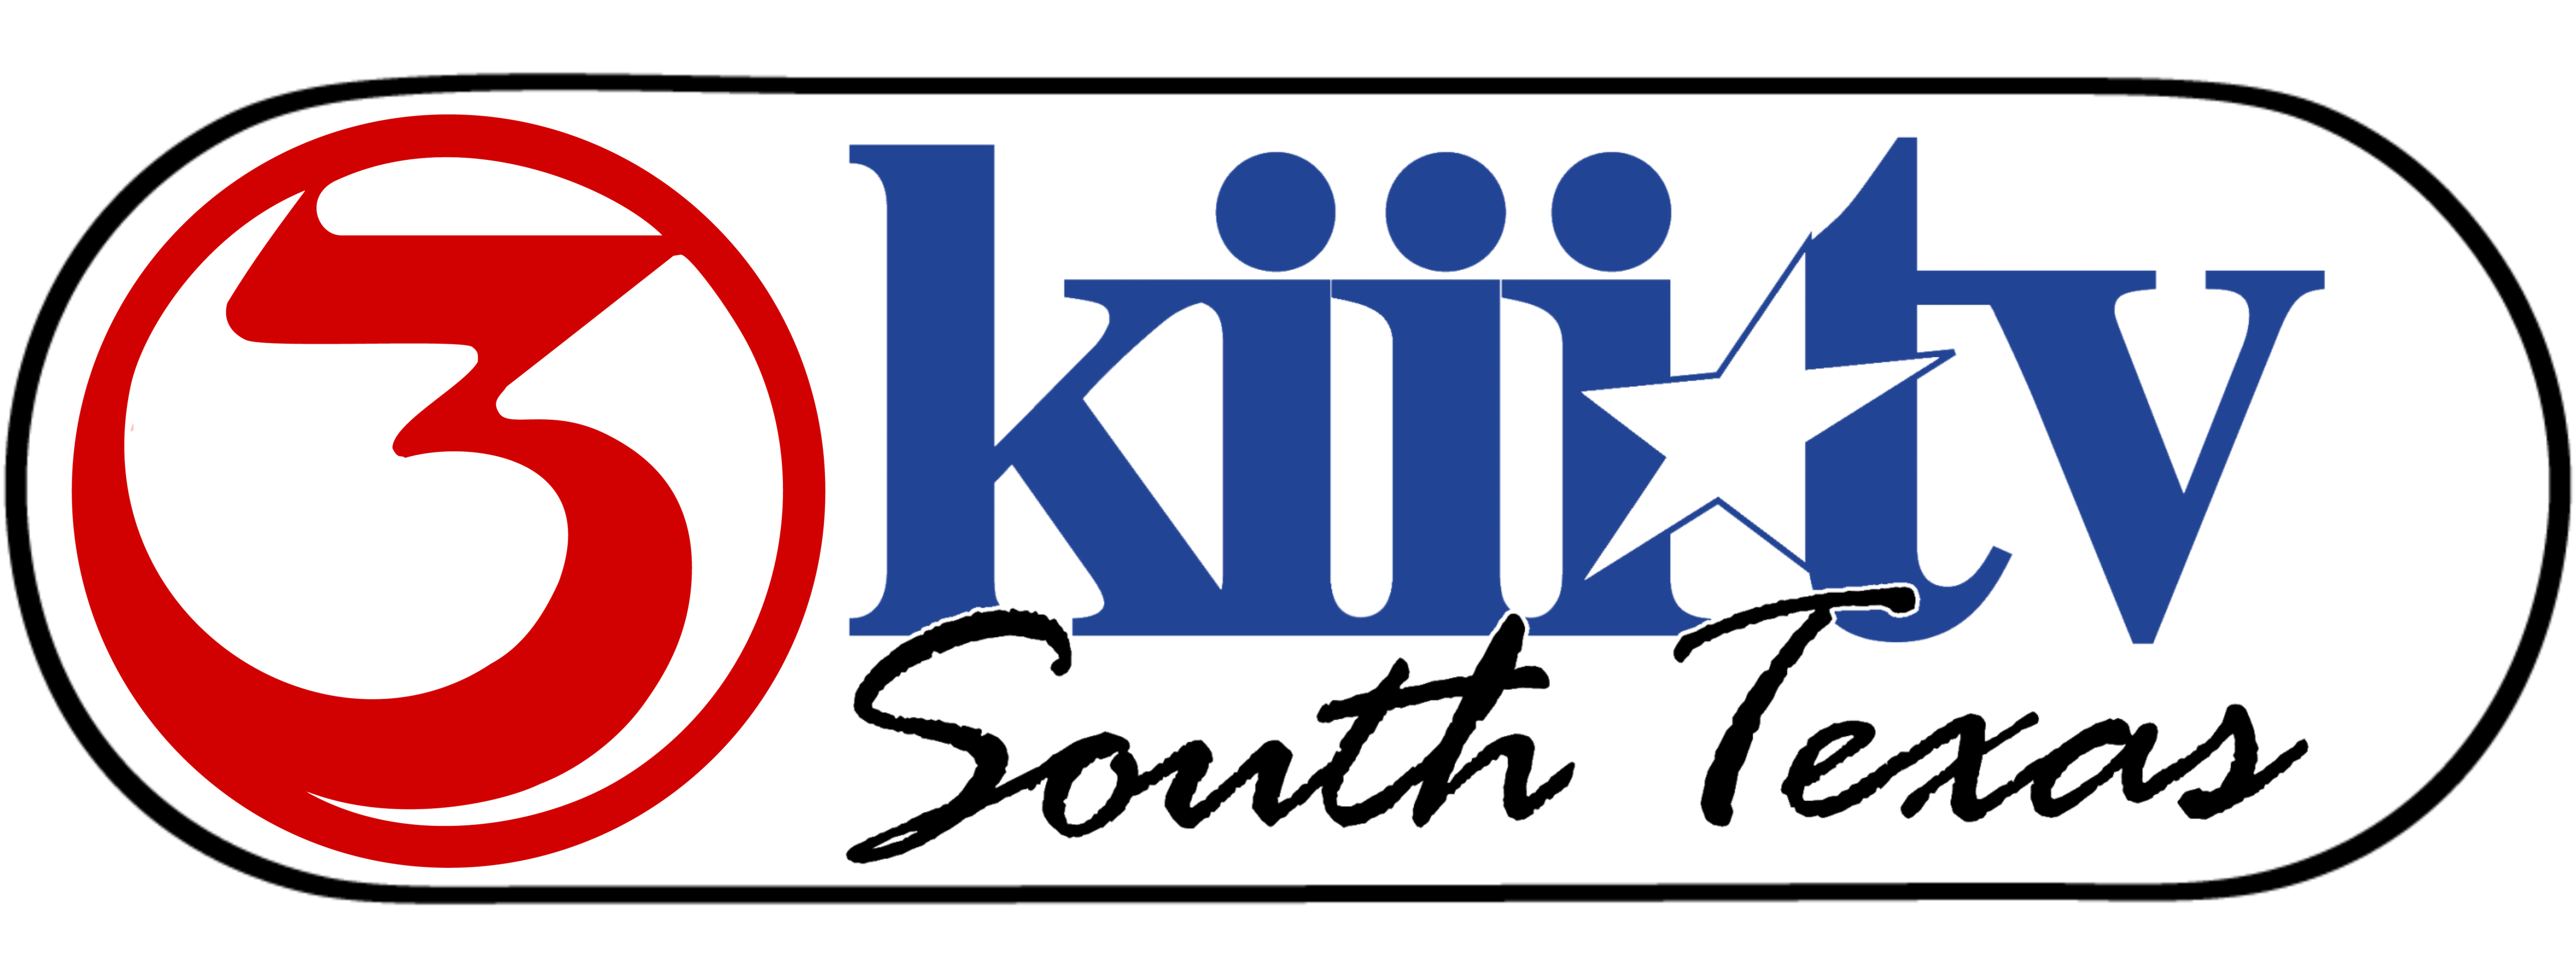 use_this_one_2014_KIII-TV_LOGO_FLAT.png